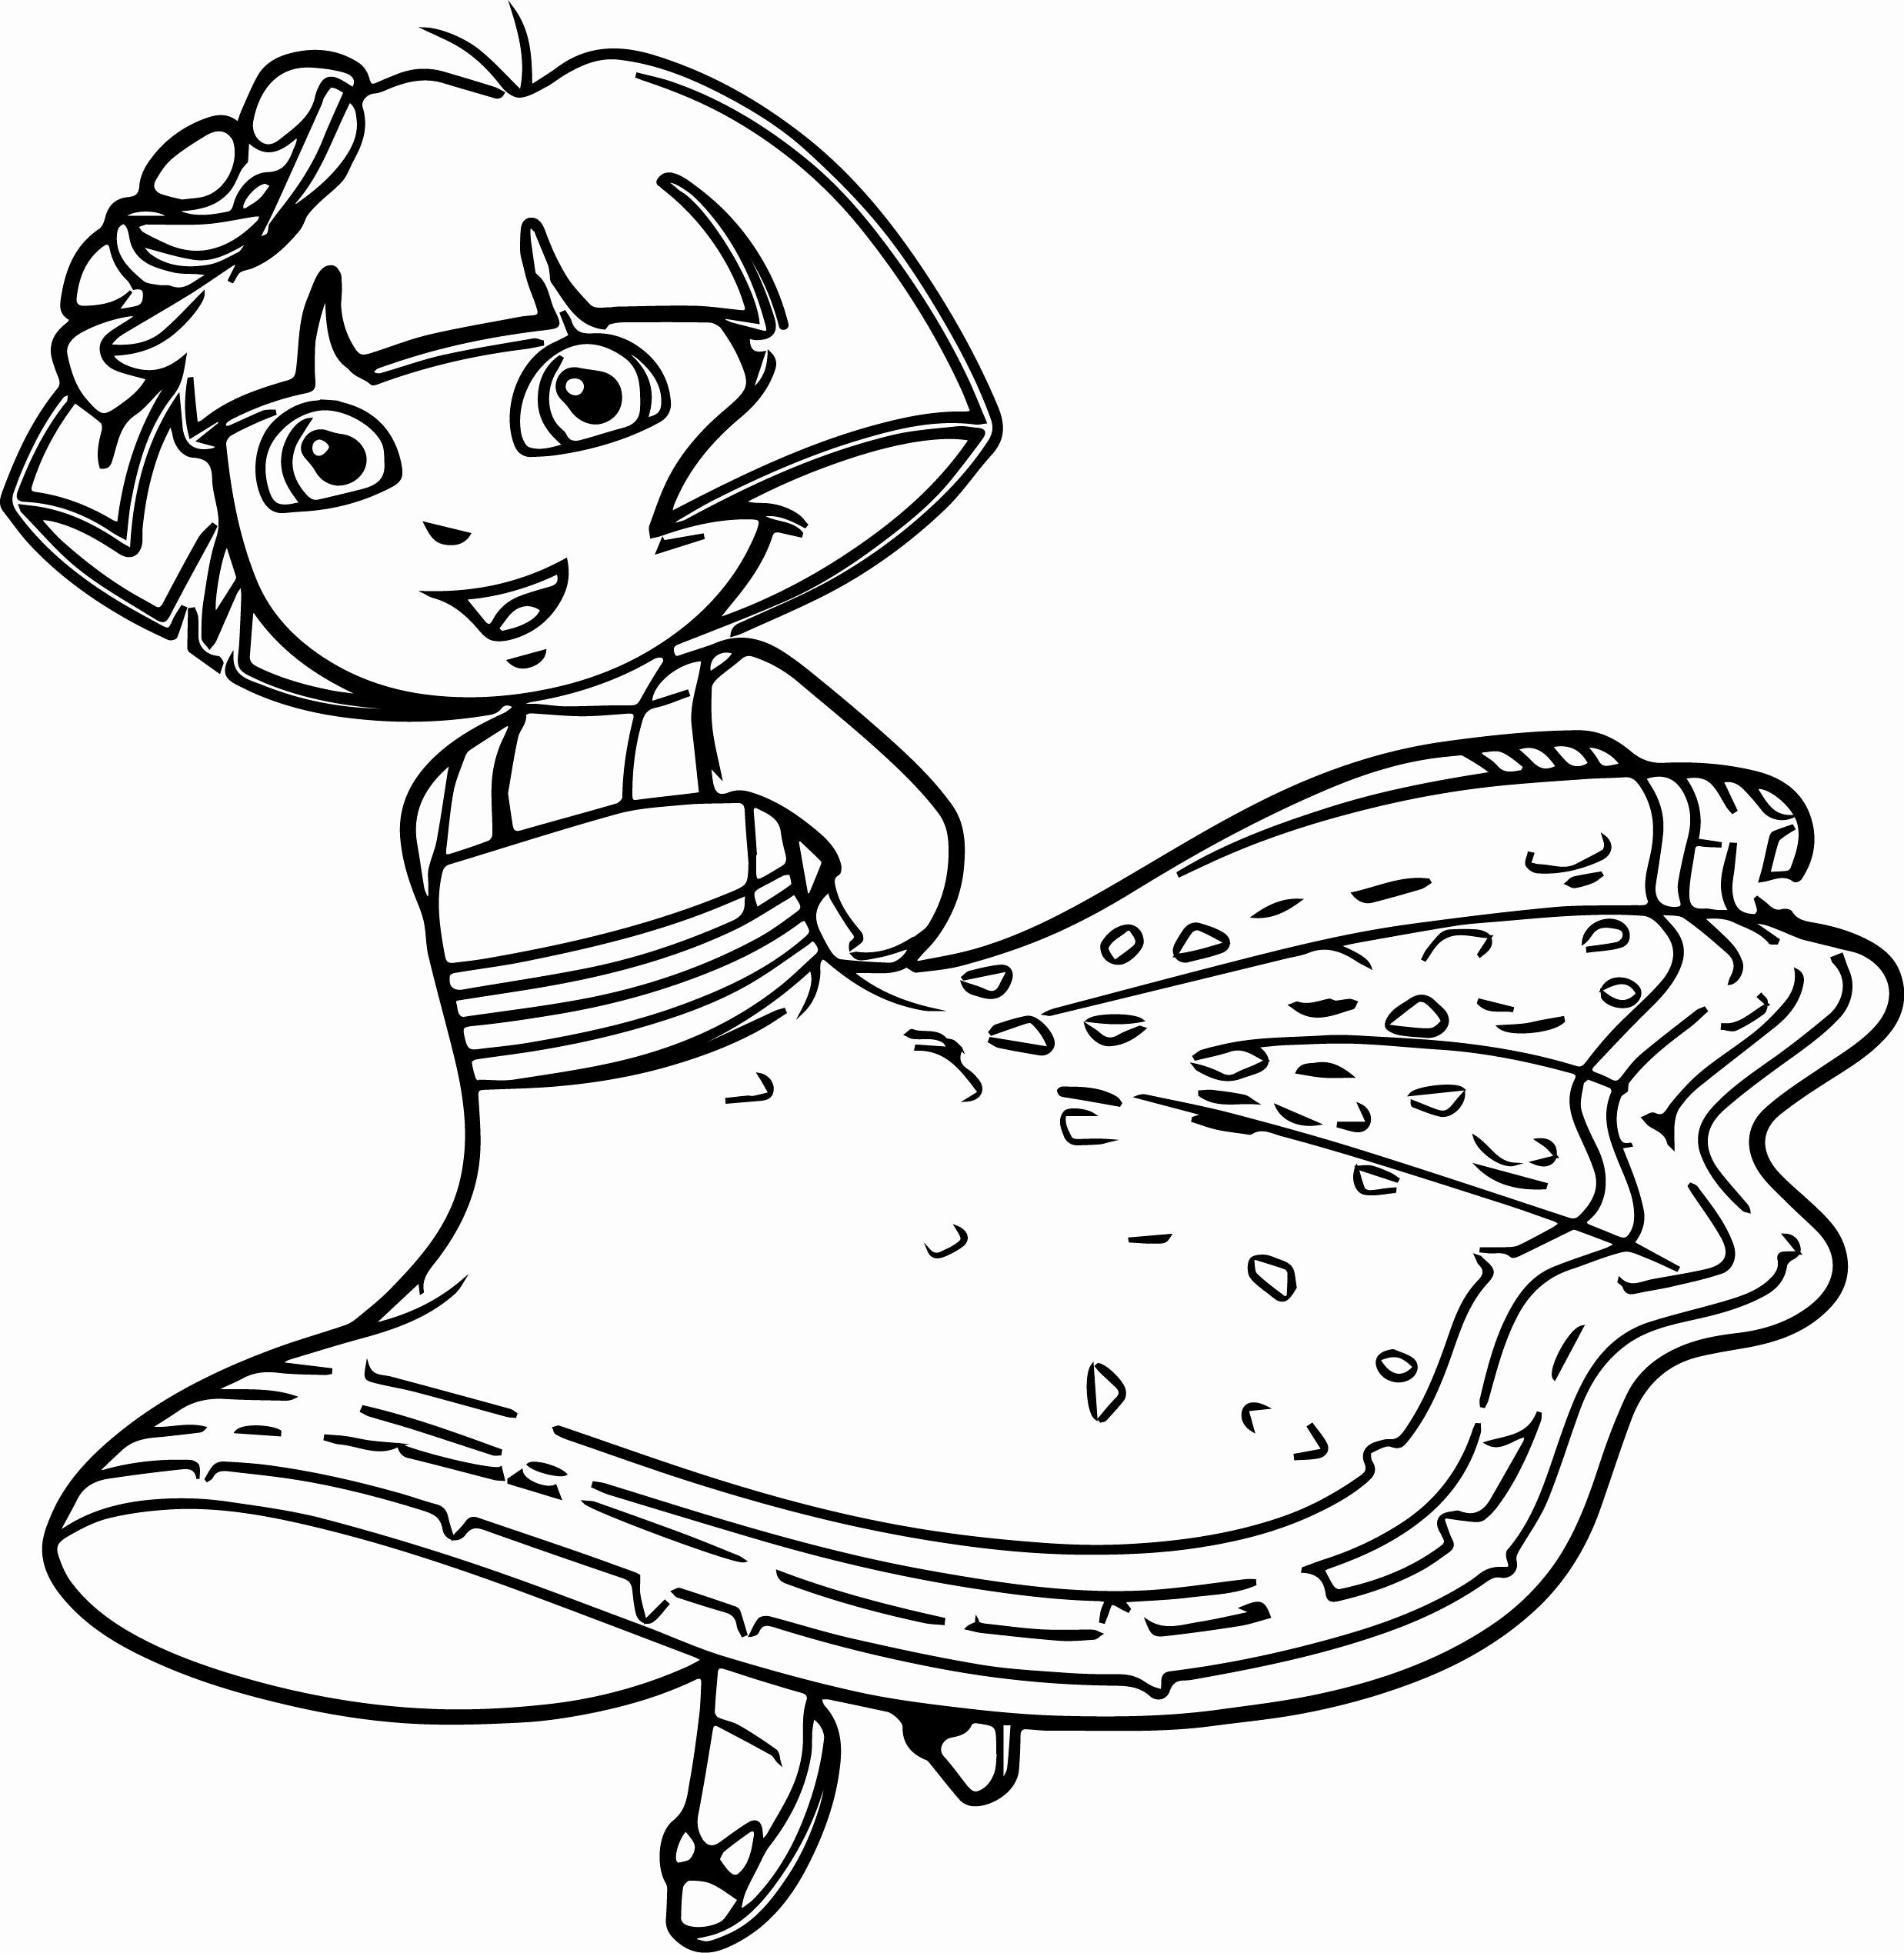 Disney Drawing Book Dora in 2020 | Nick jr coloring pages